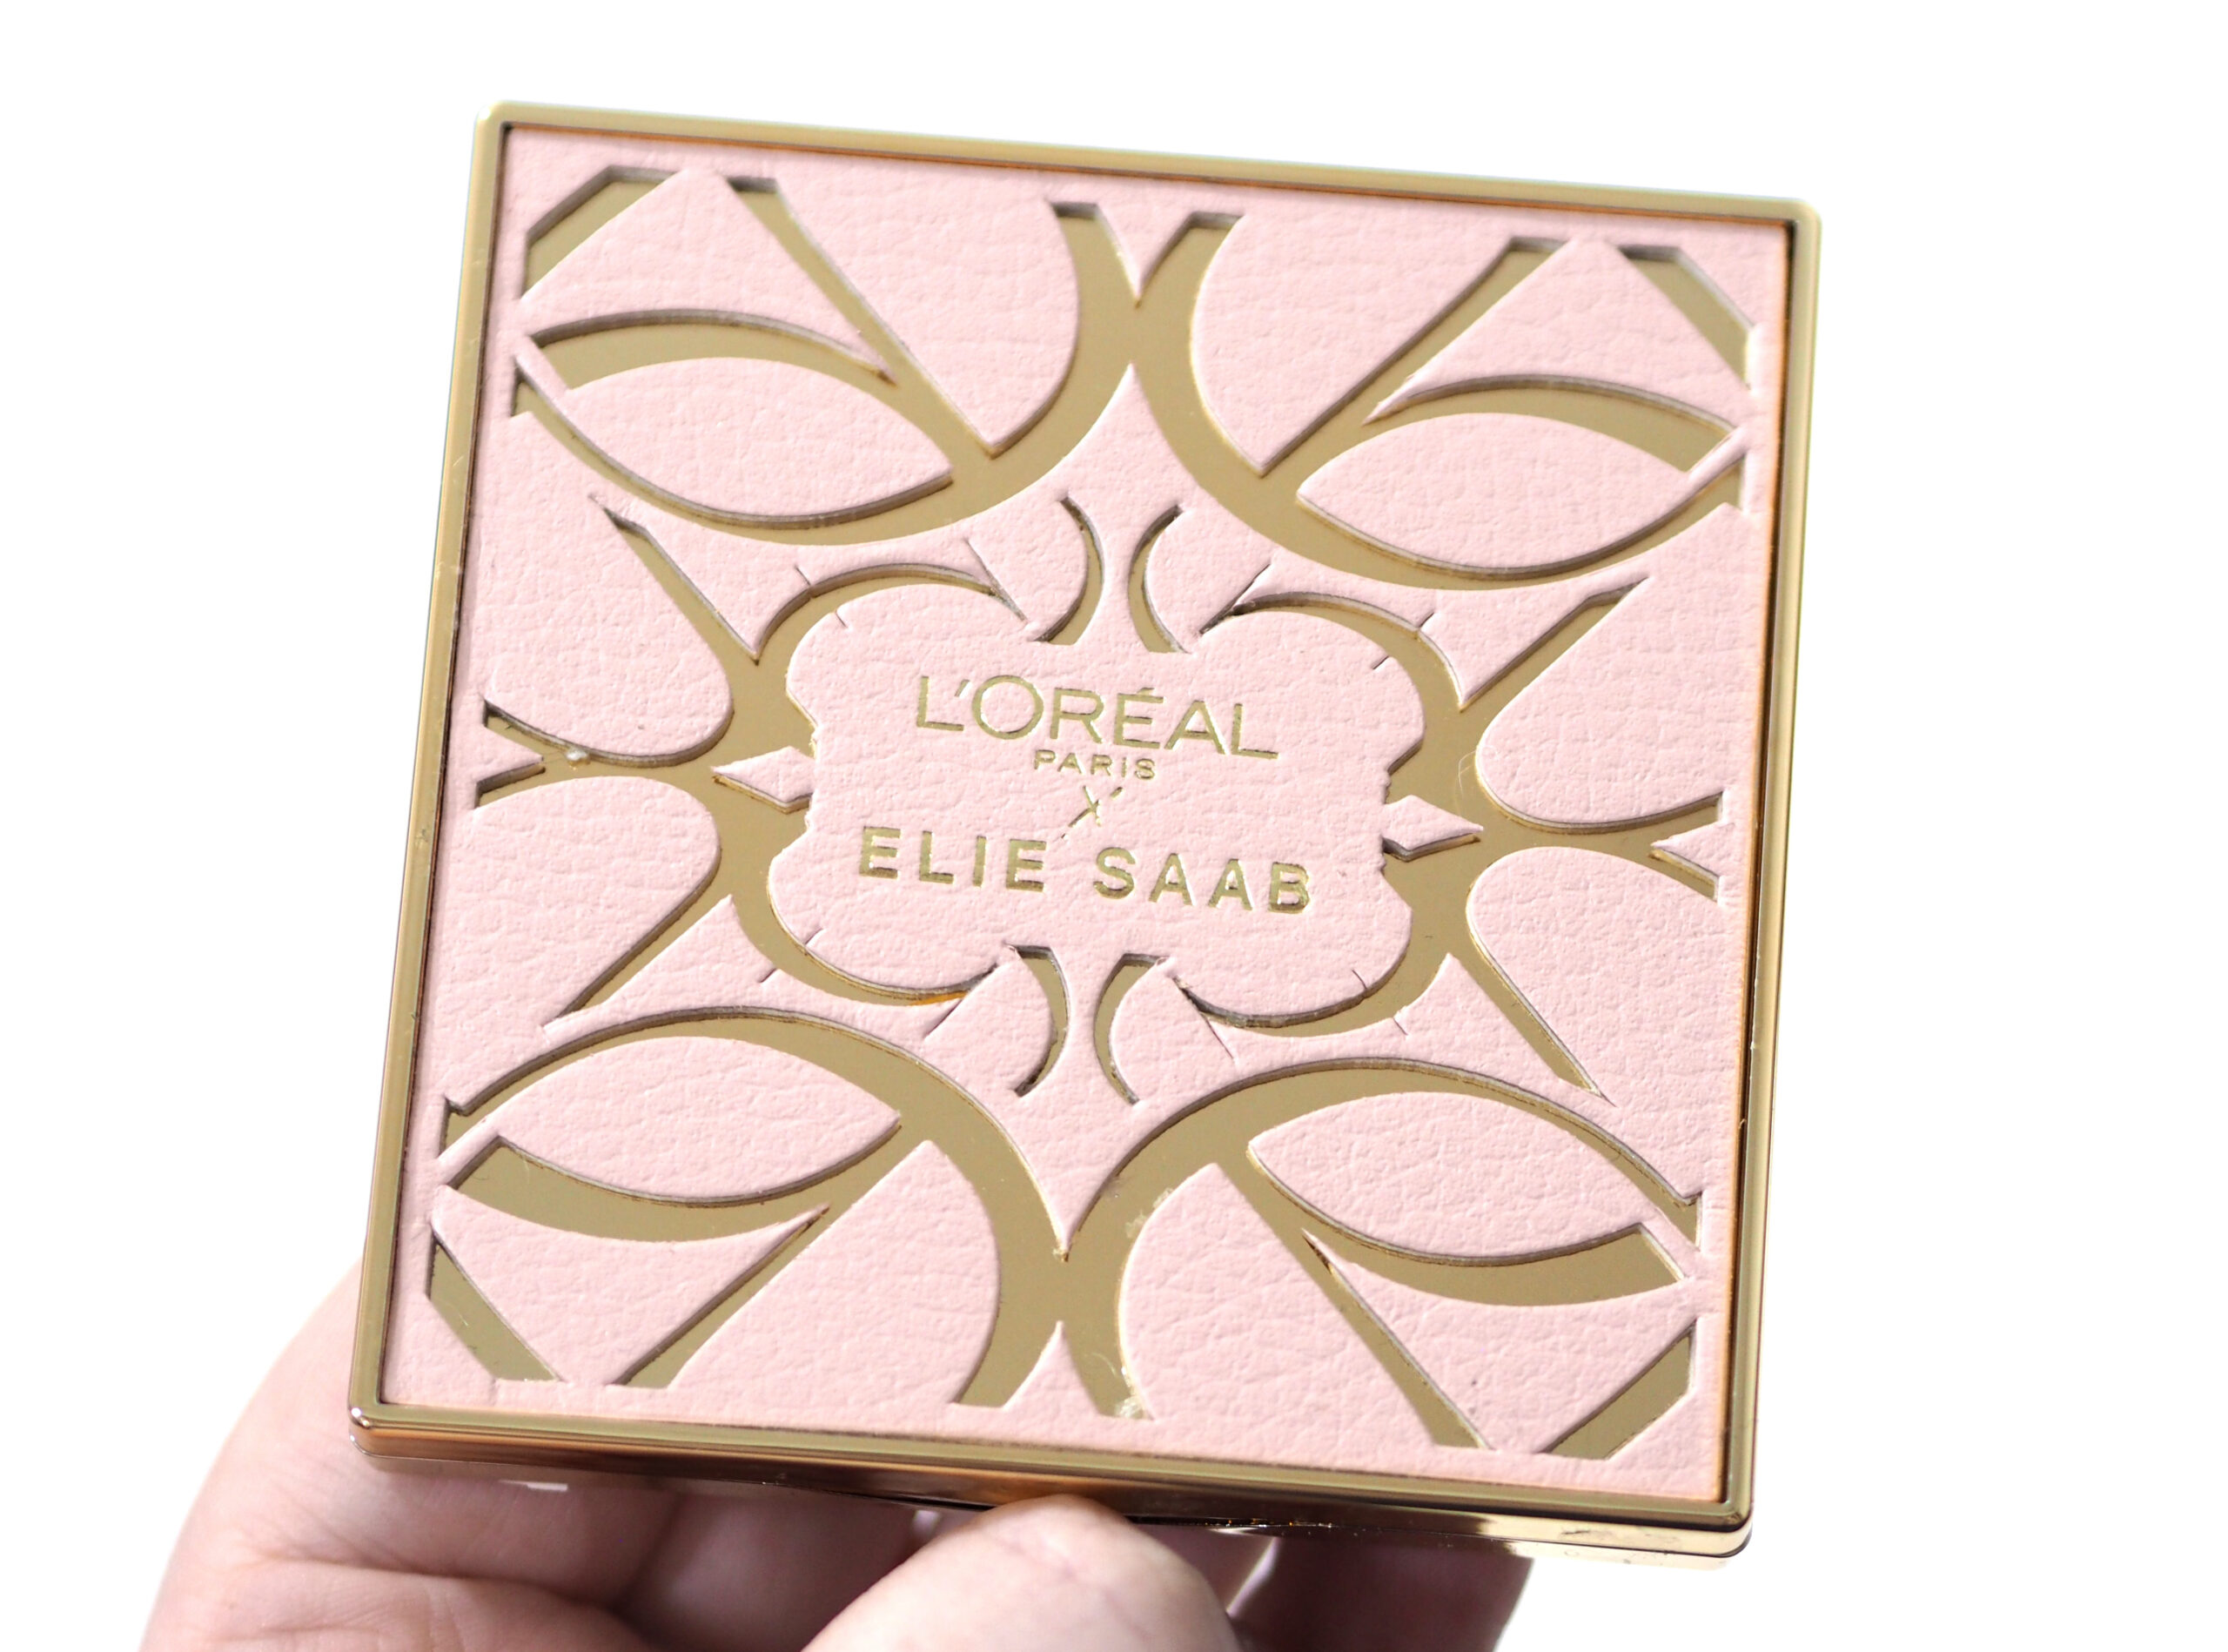 L'Oreal x Elie Saab Bridal Eyeshadow Palette Review Swatches